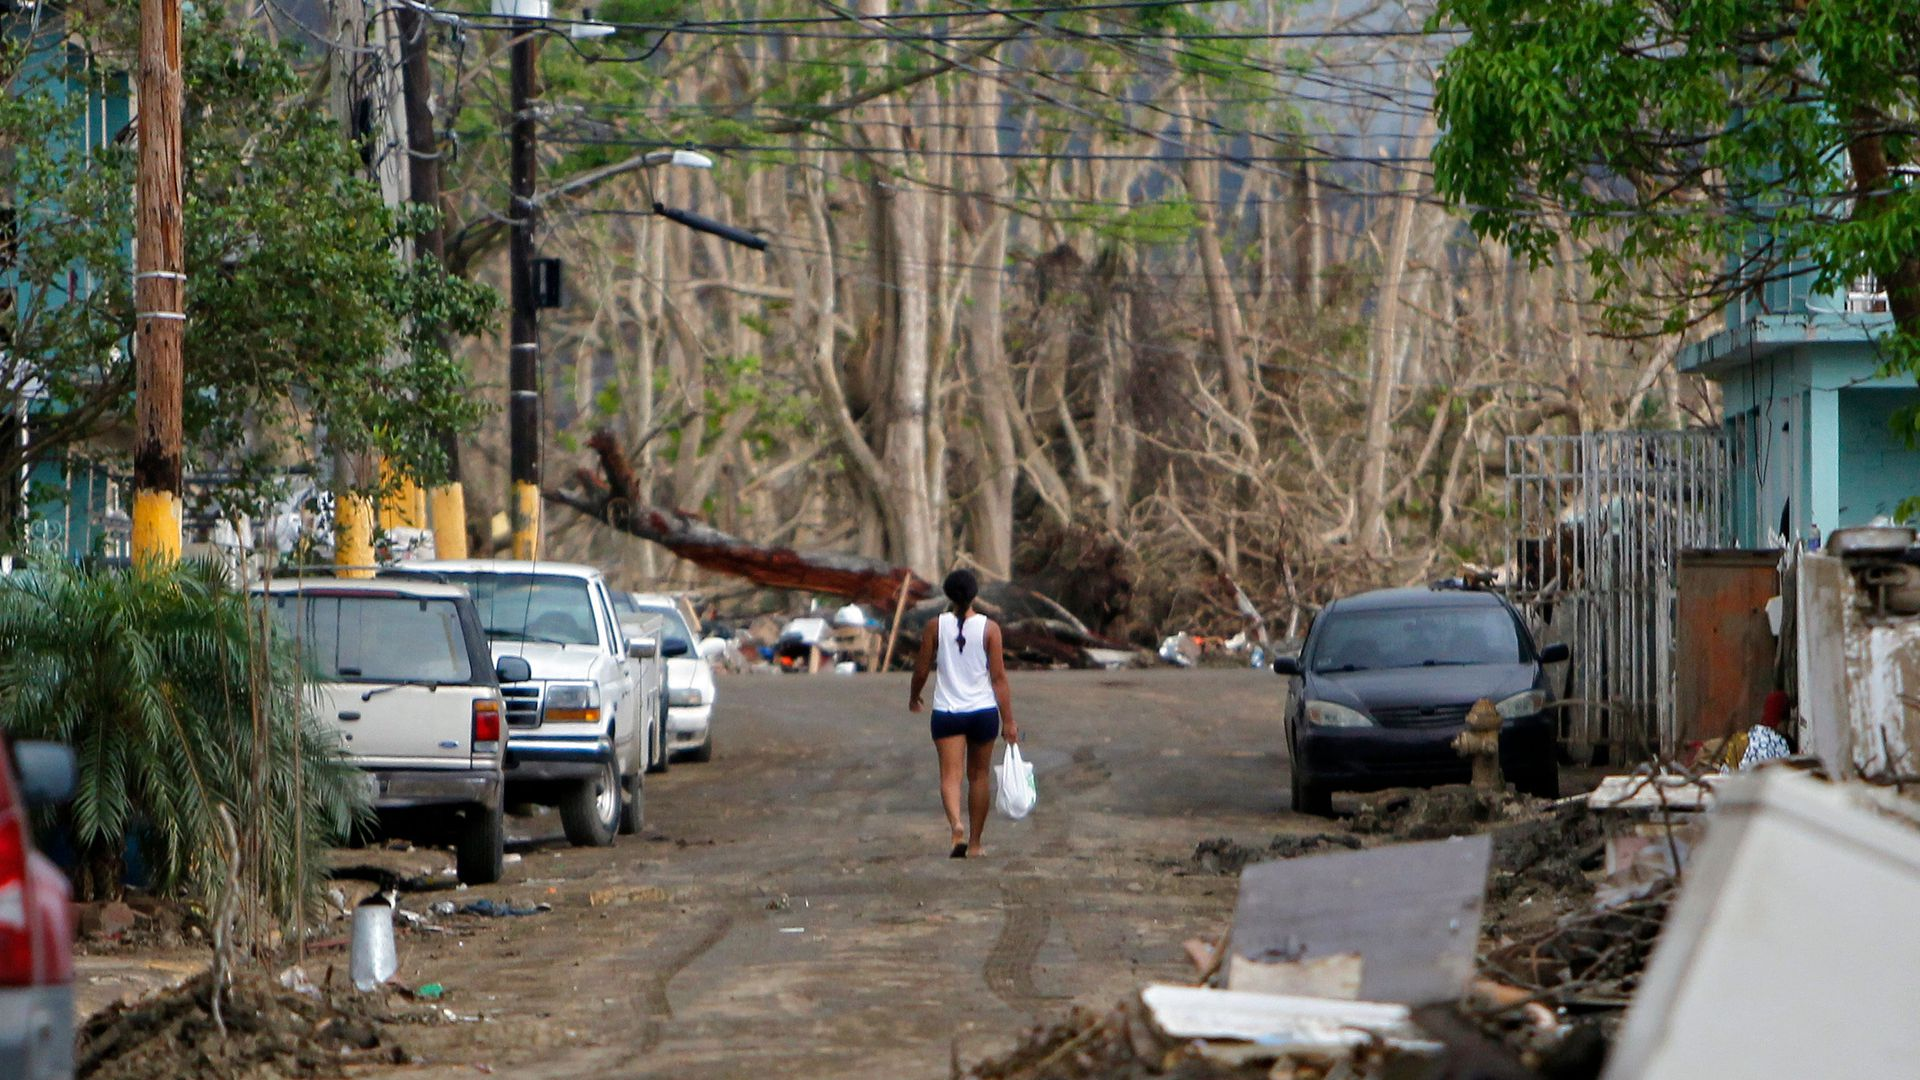 A woman in a white tank top walks down the middle of a dirt road with cars on either side.